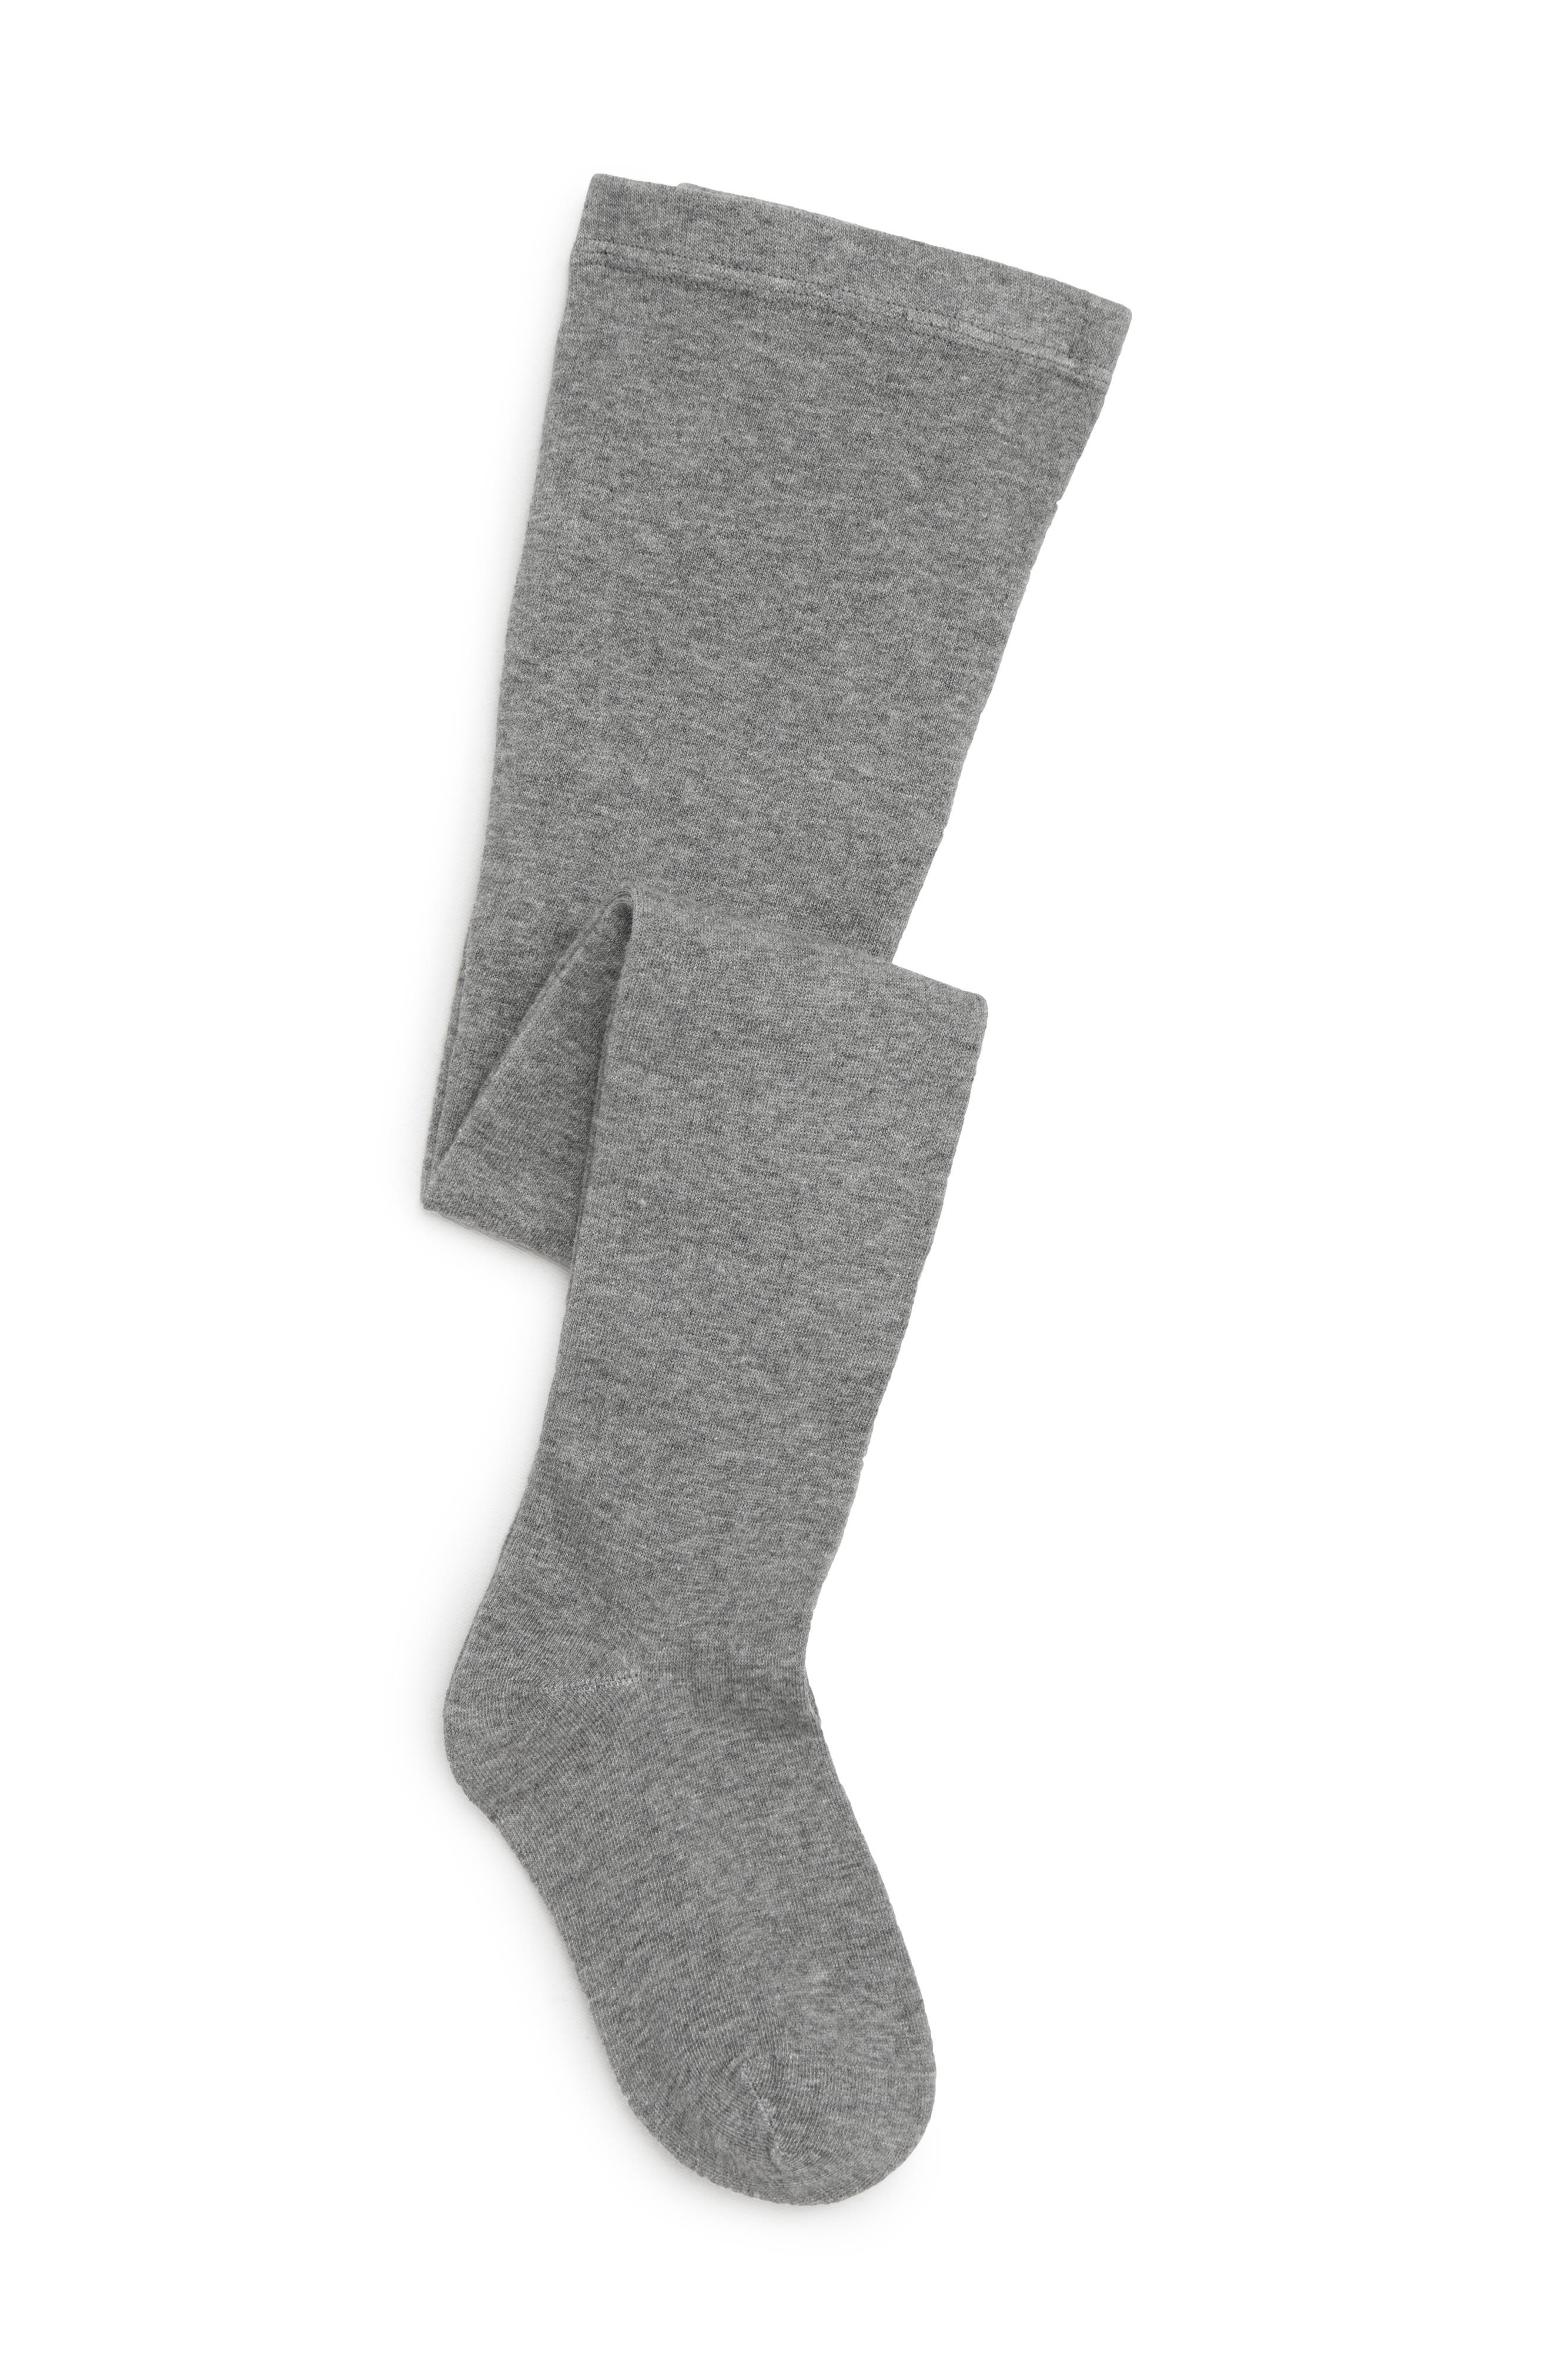 Nordstrom Sweater Tights,                         Main,                         color, HEATHER GREY